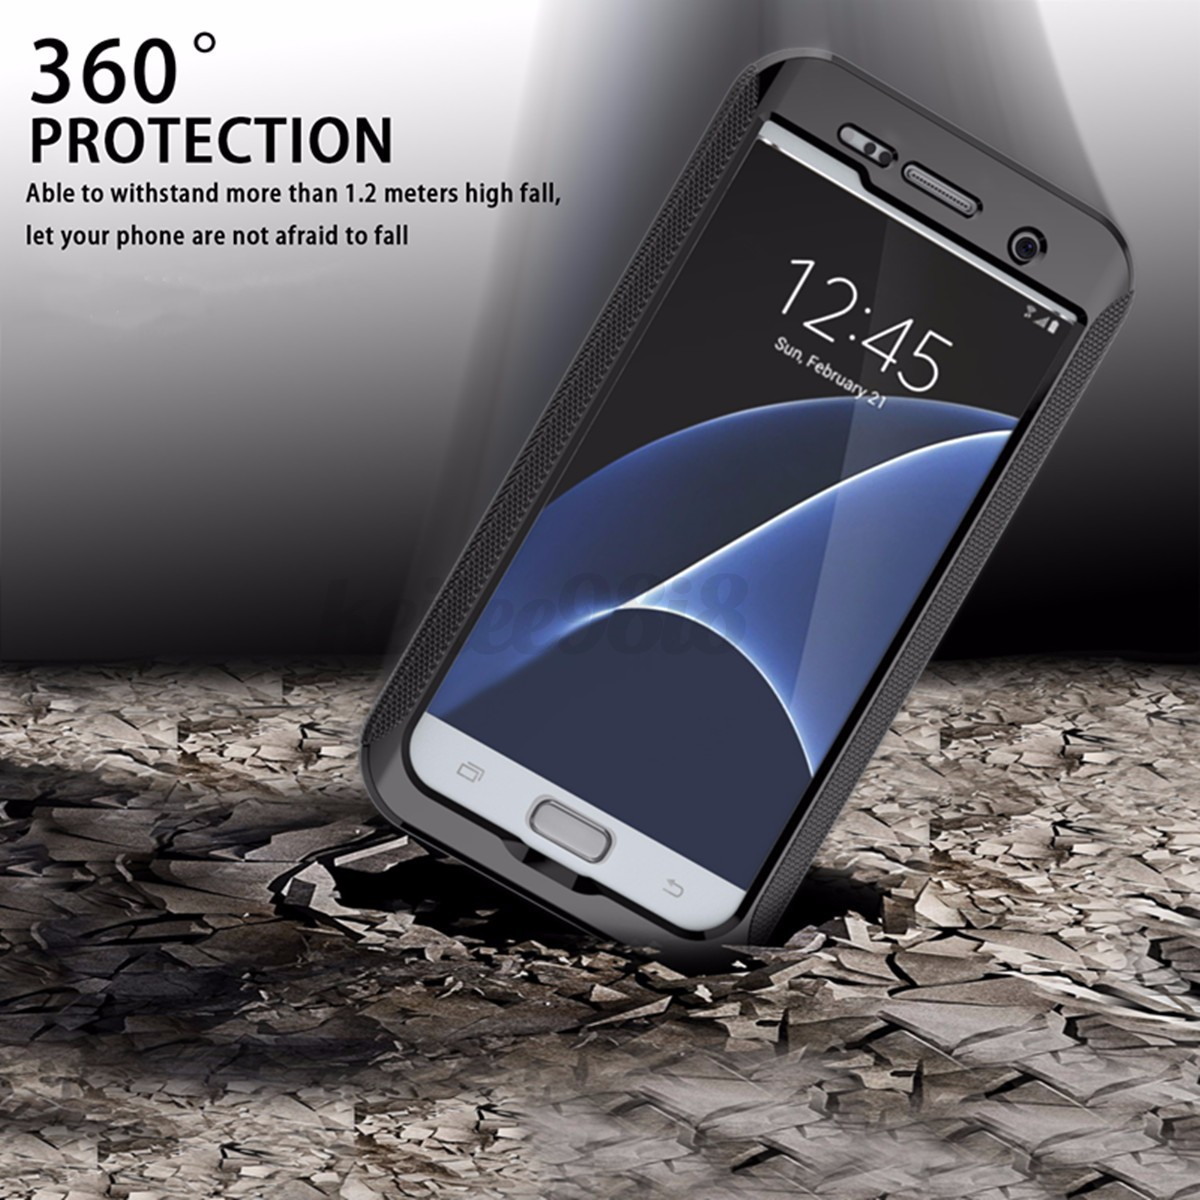 etanche anti choc poussi re neige coque etui housse pr samsung galaxy s7 edge s7 ebay. Black Bedroom Furniture Sets. Home Design Ideas